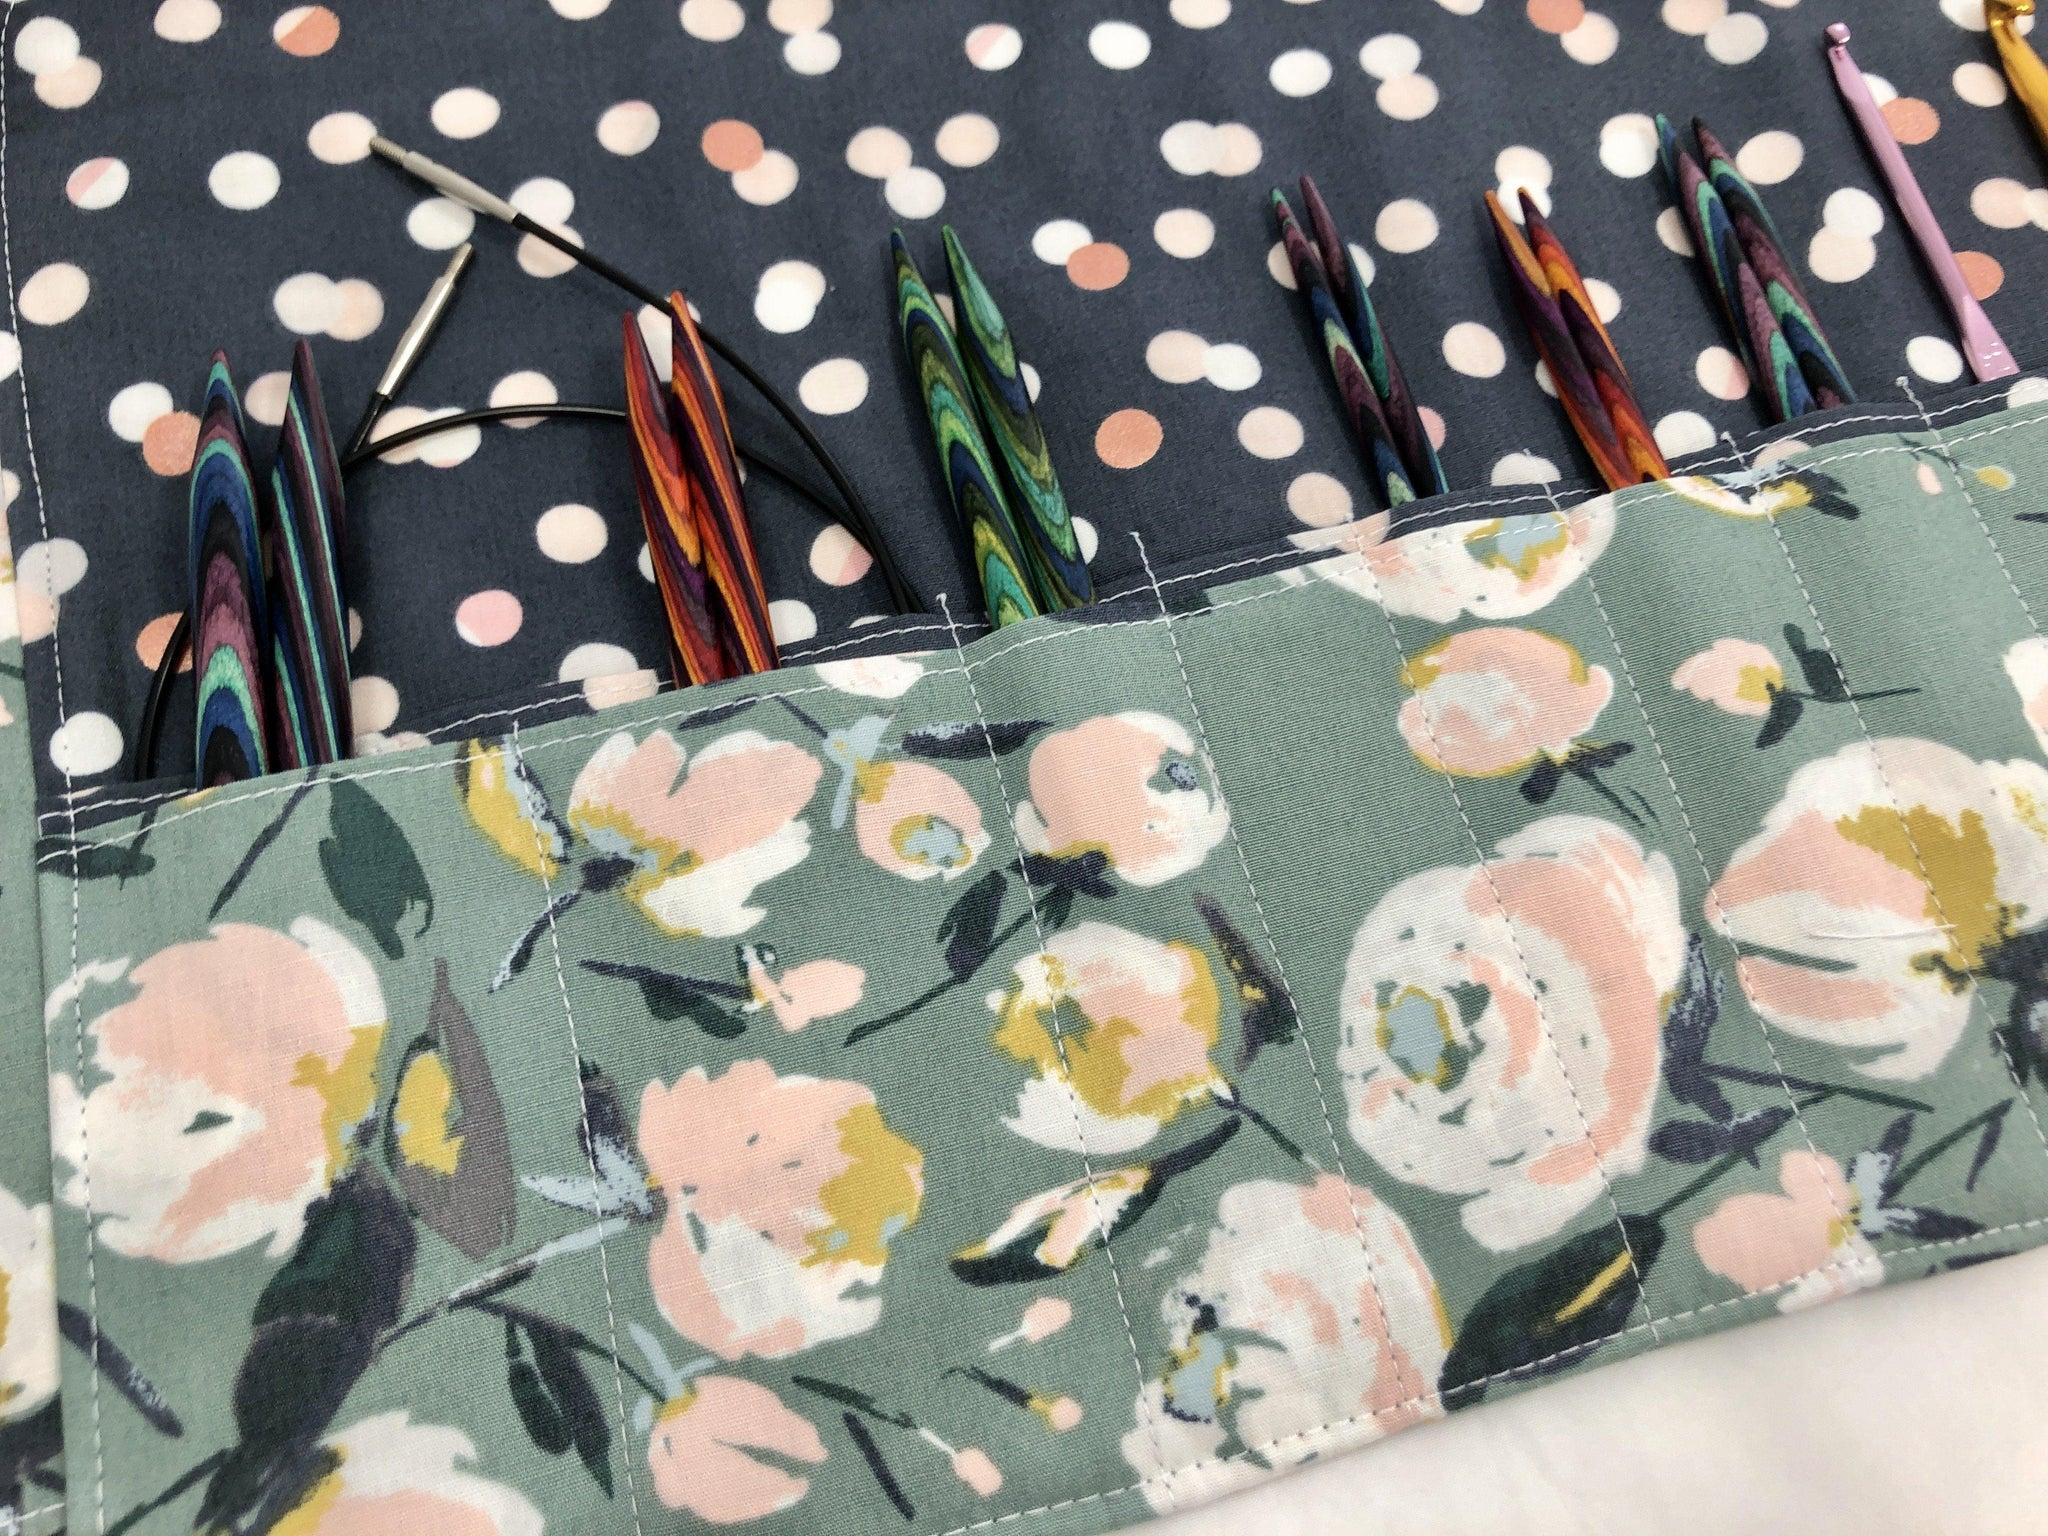 Floral Interchangeable Knitting Needle Case, Crochet Hook Roll, Travel Needle Storage - EcoHip Custom Designs